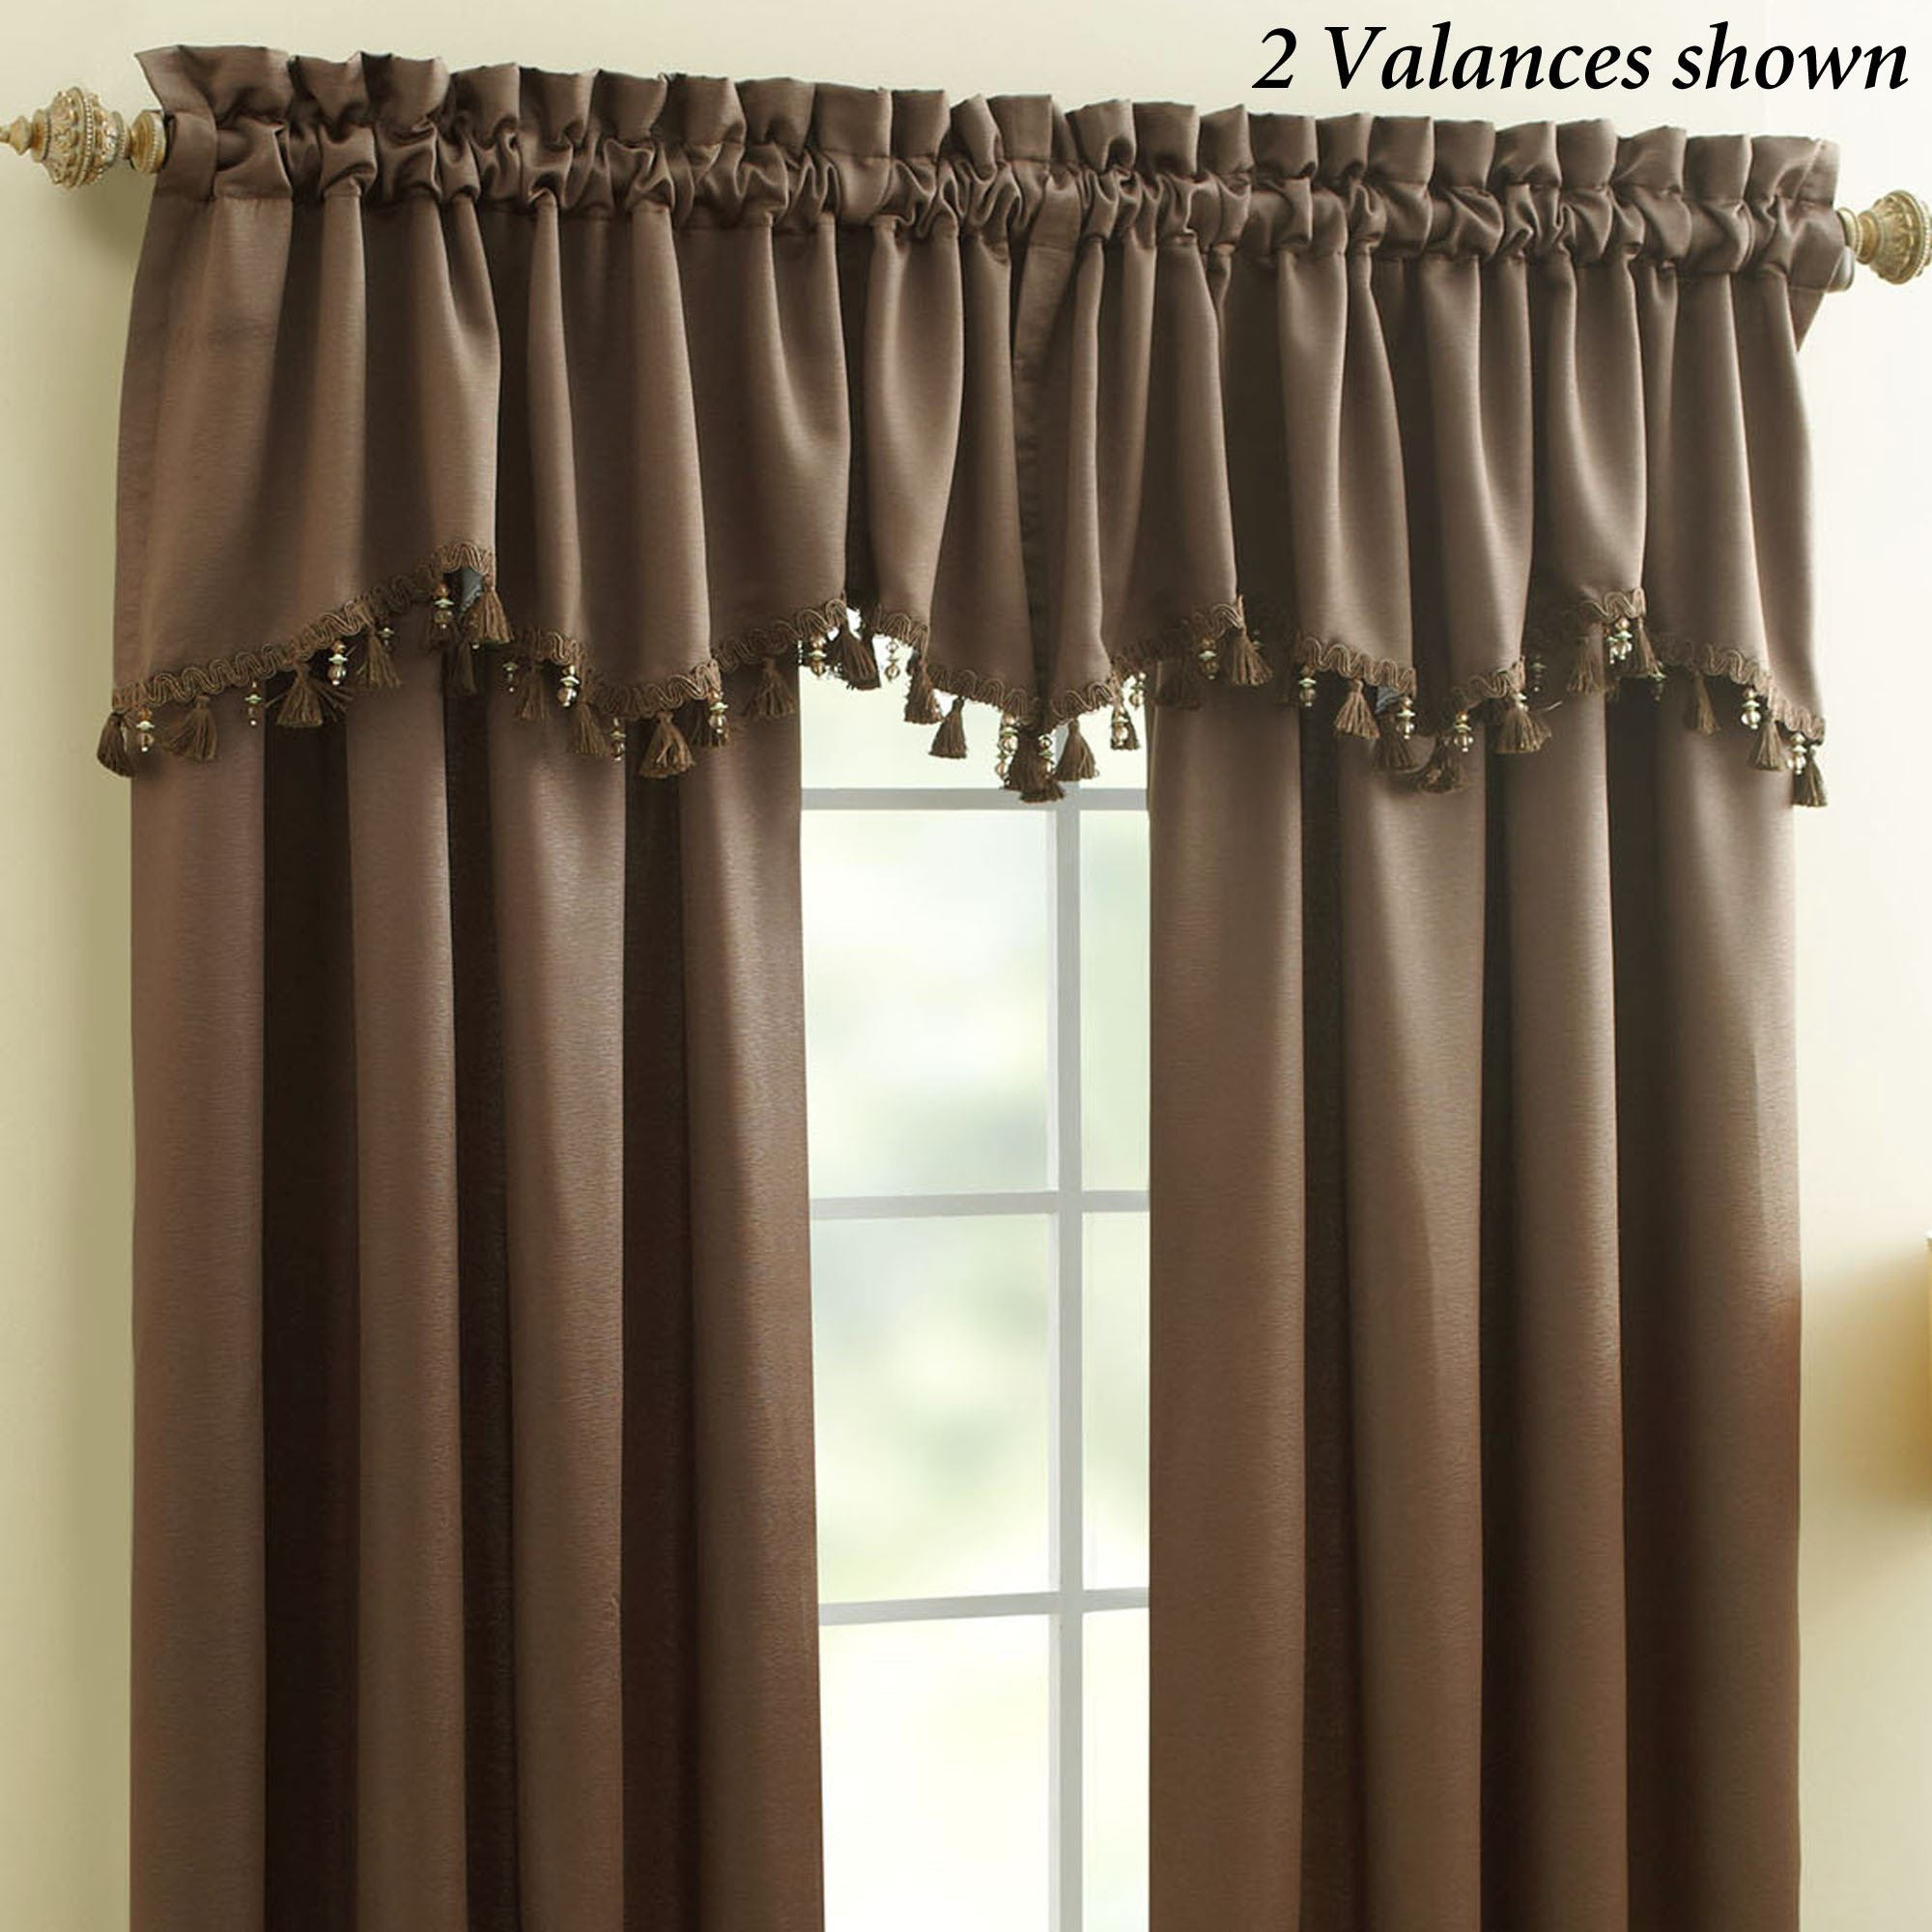 t by window and decorative with bedroom designed doshie valances custom curtains made valance kitchen tan door